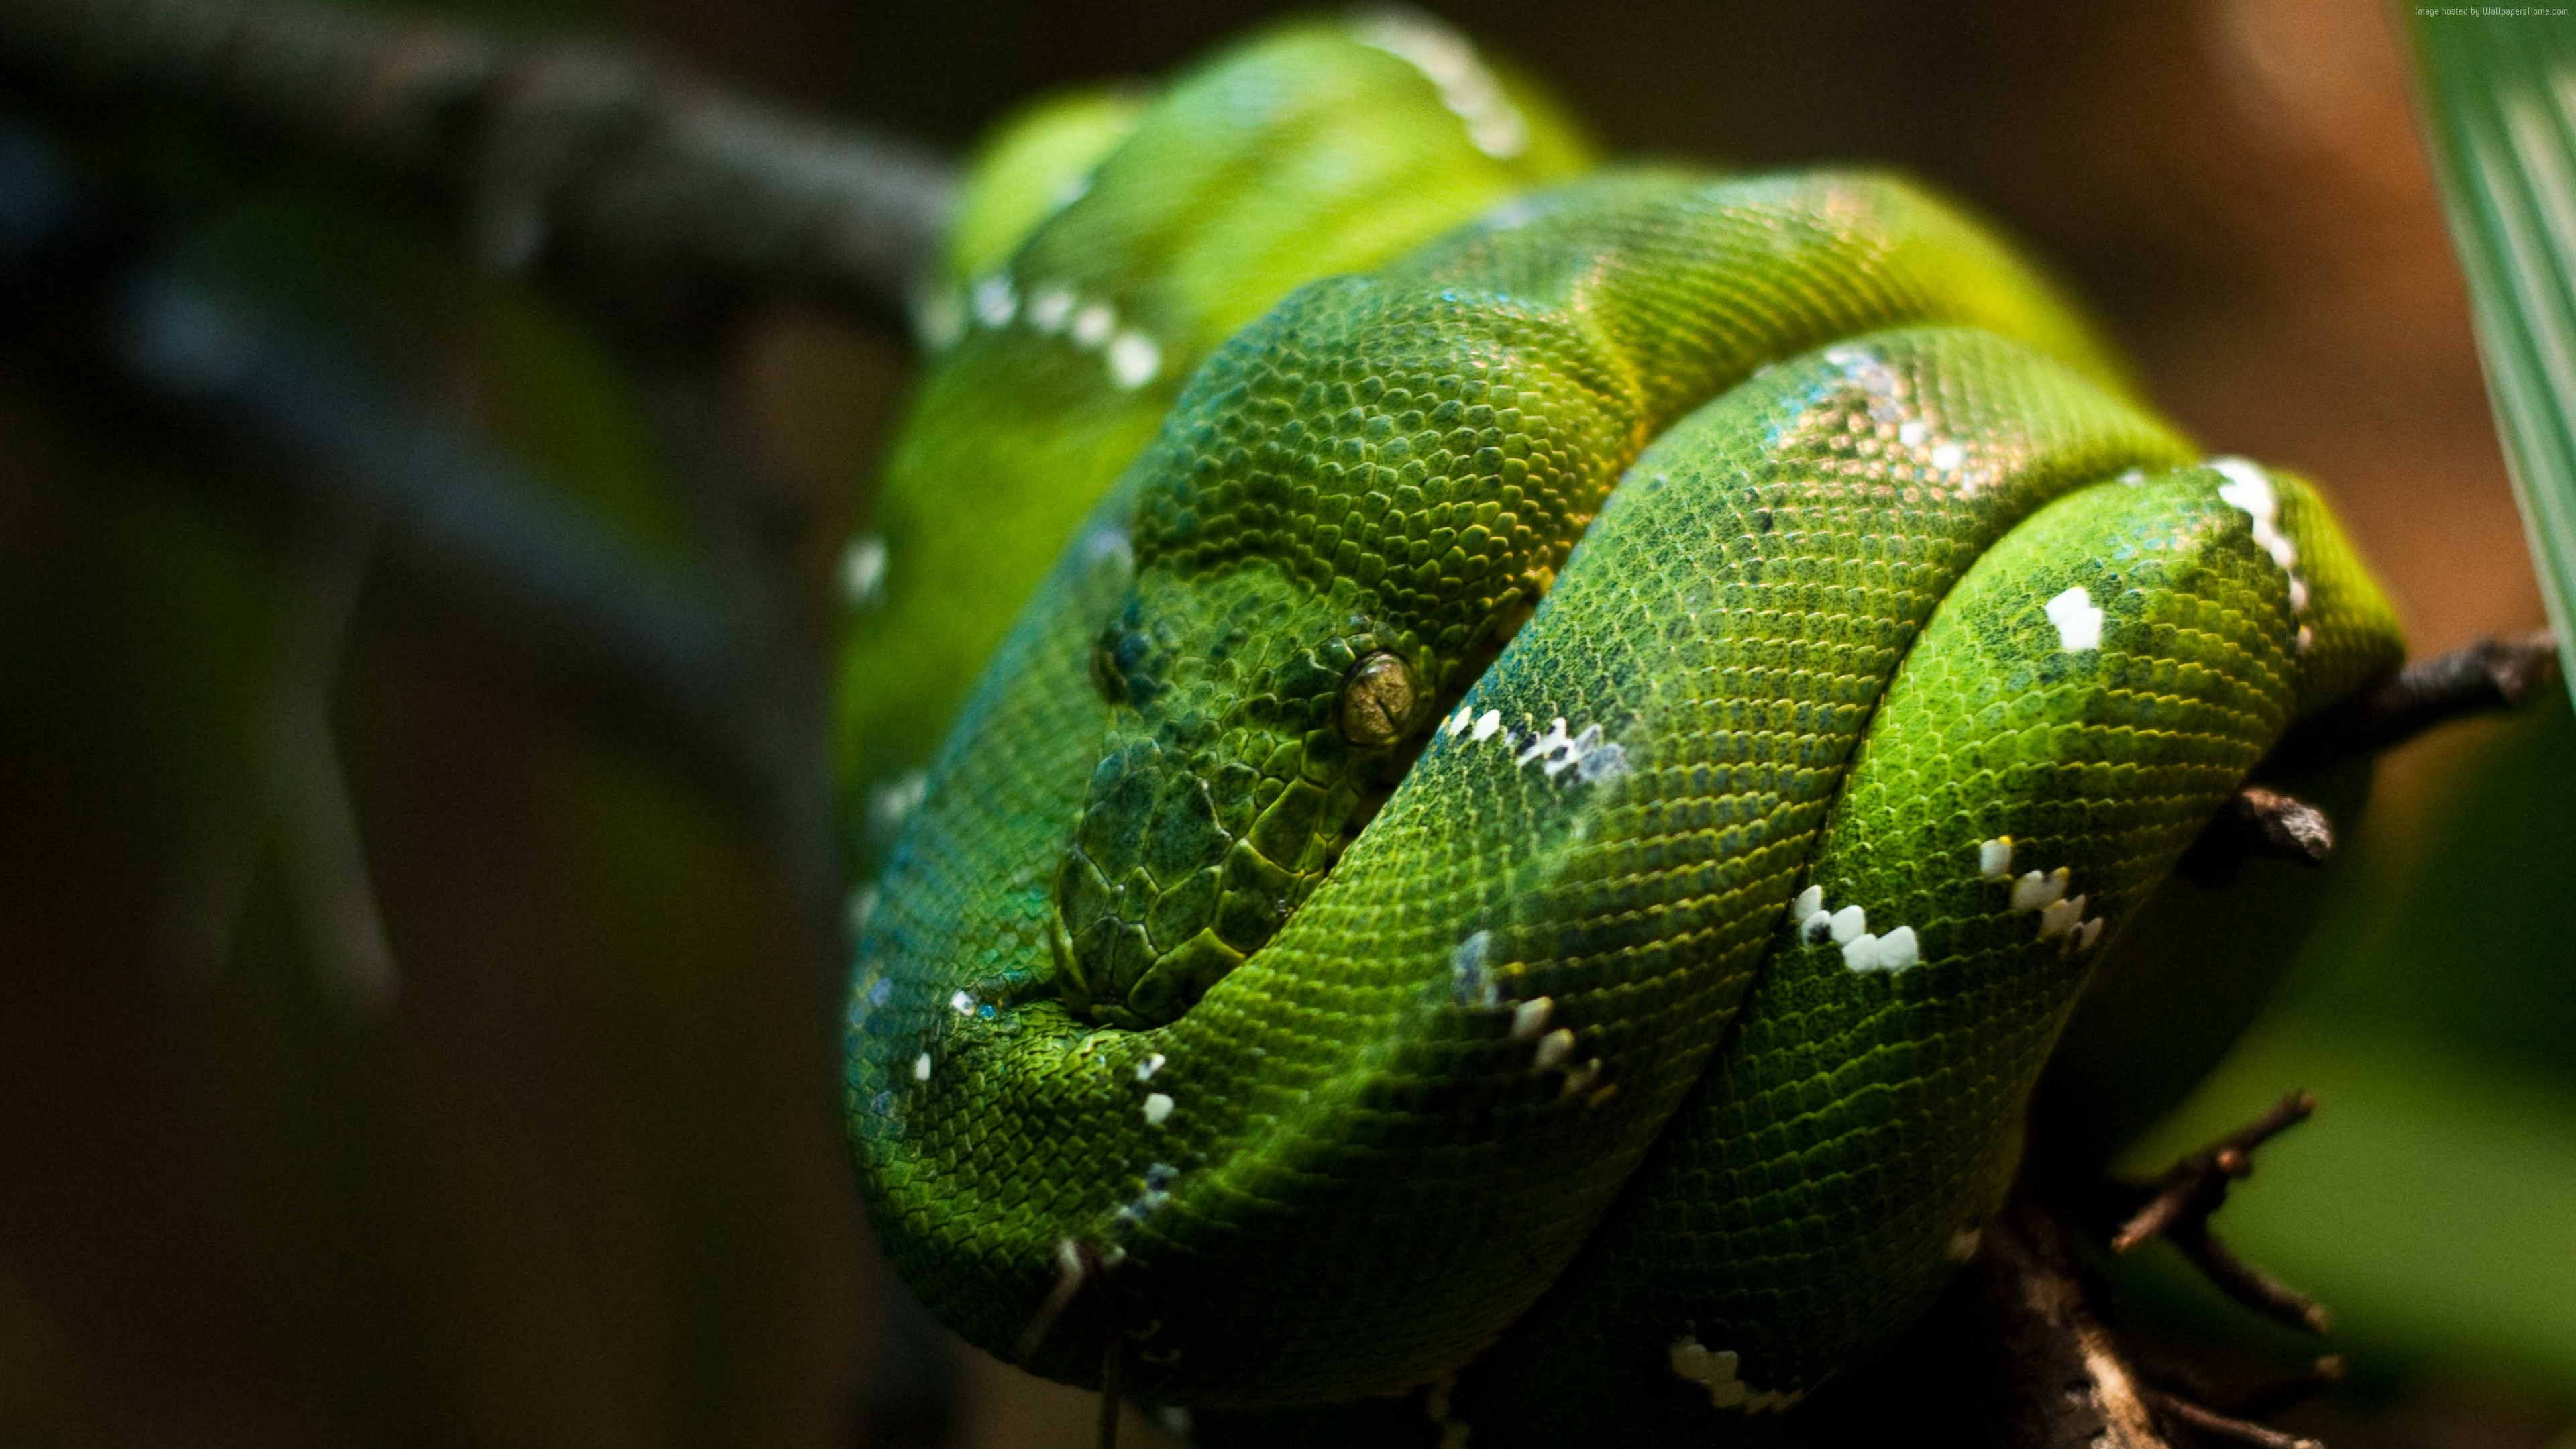 Wallpaper Python, Singapore, zoo, Emerald, Green, snake, eyes, close-up, Animals